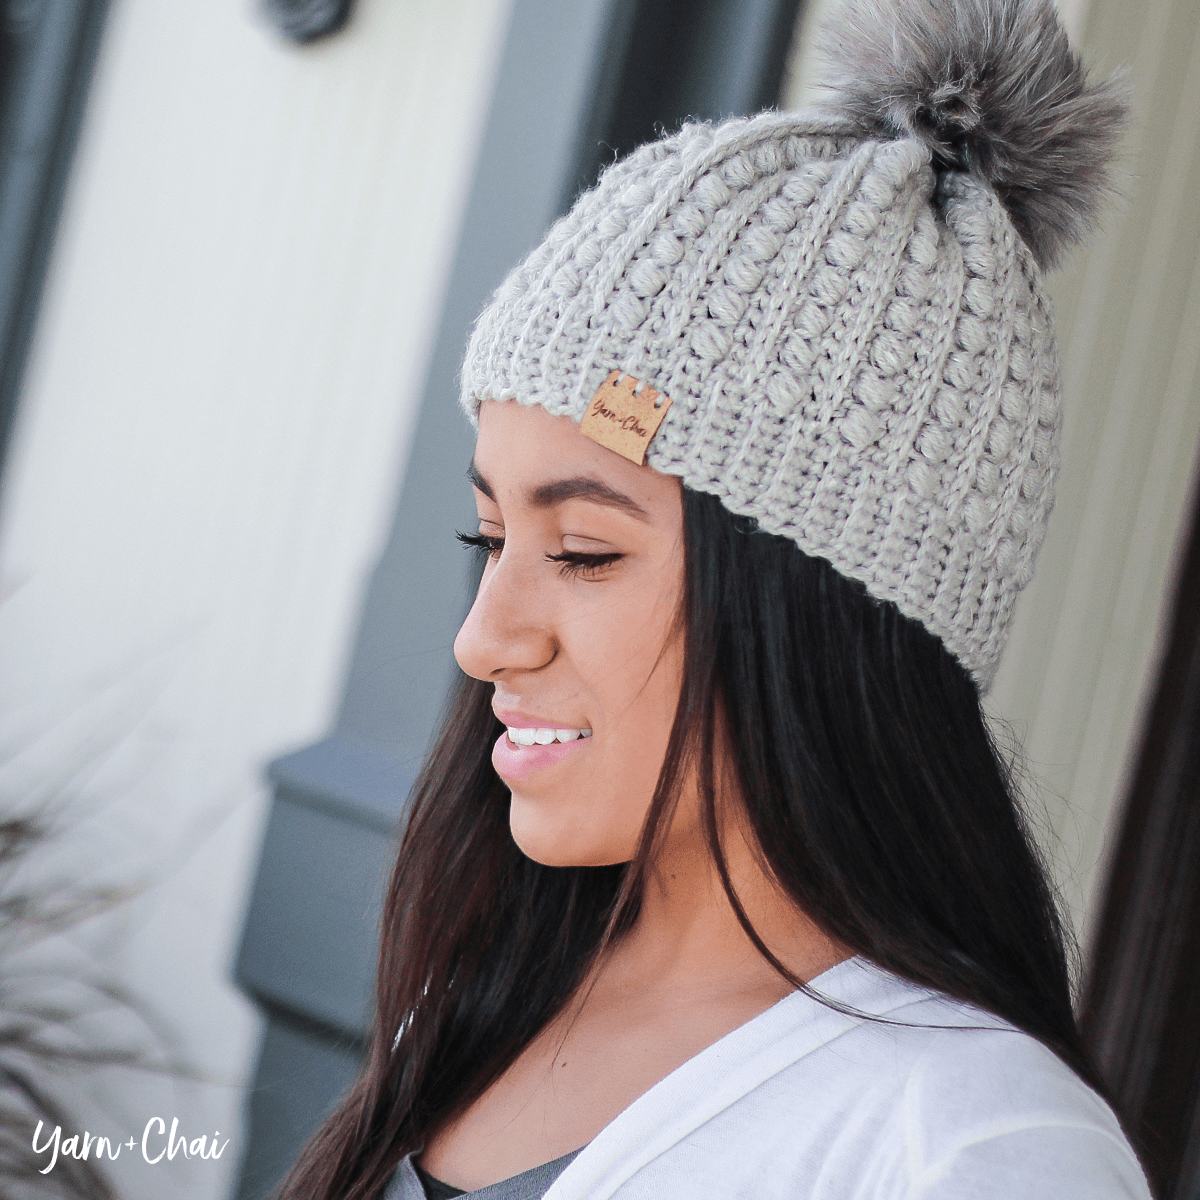 Here are a couple more photos of this stylish beanie 491a154826b3